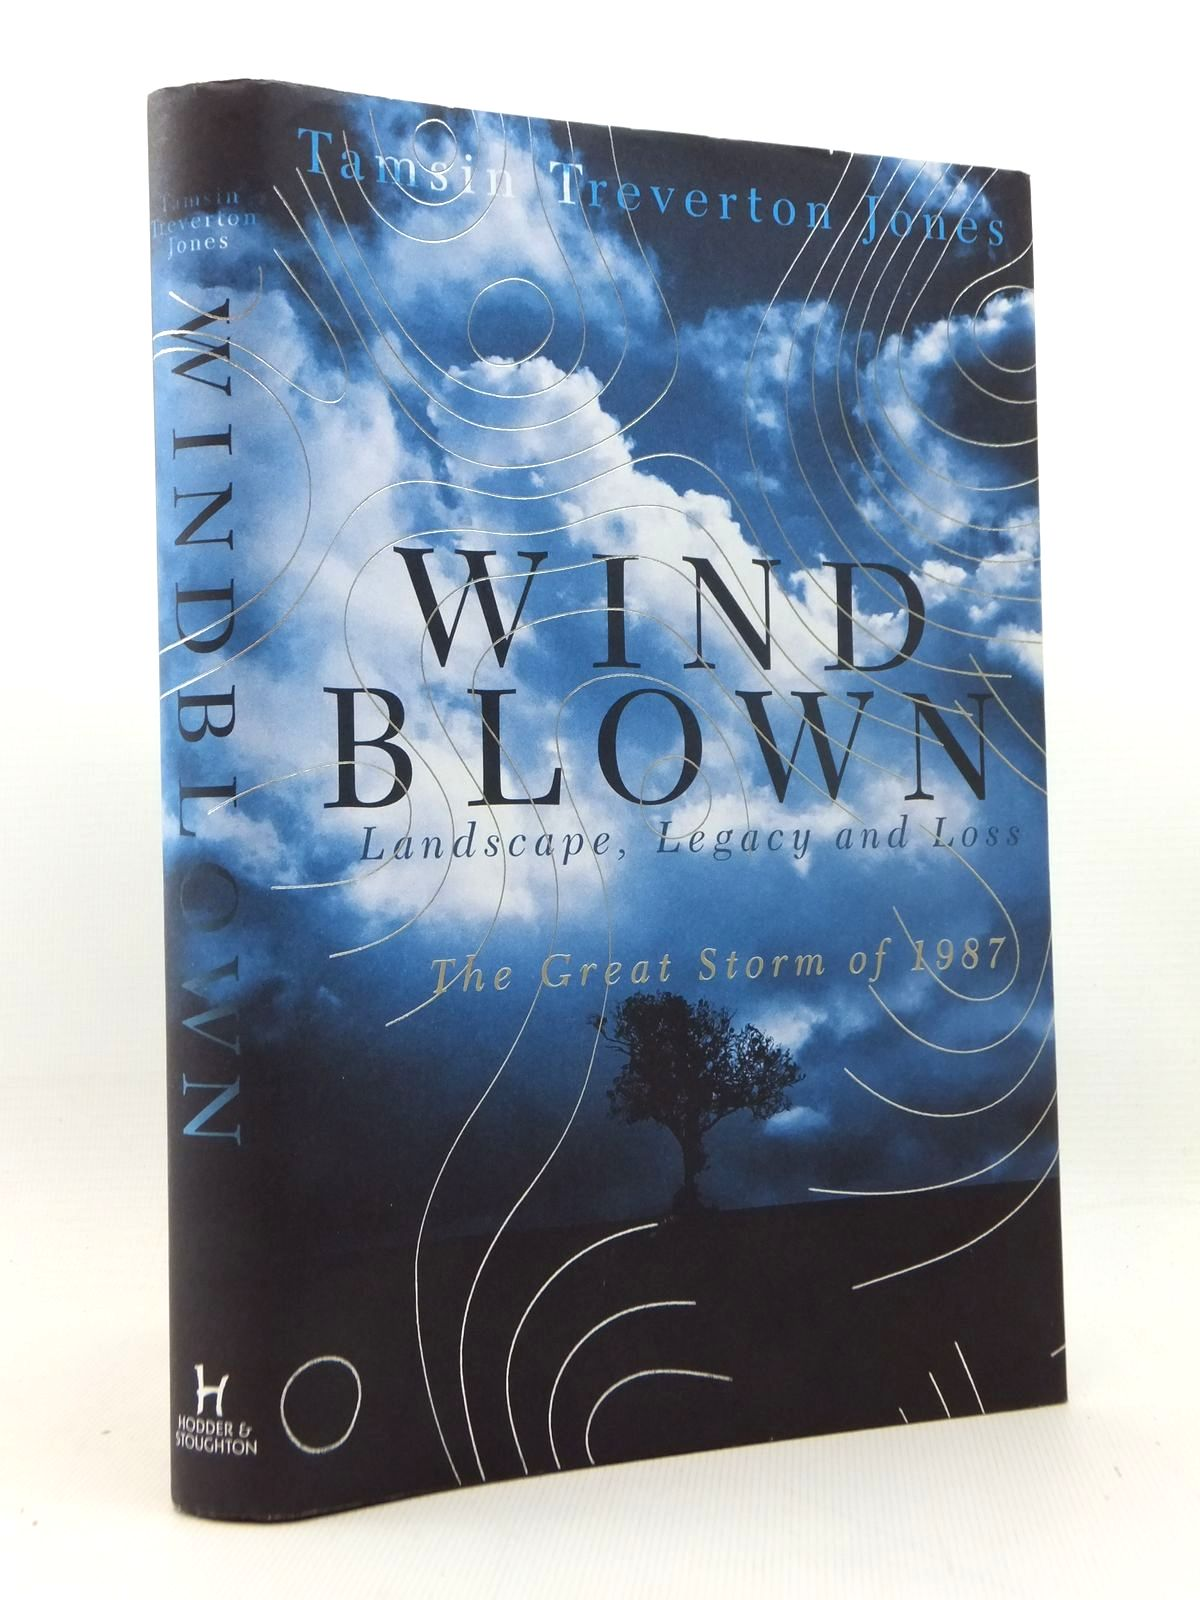 Photo of WINDBLOWN: LANDSCAPE, LEGACY AND LOSS THE GREAT STORM OF 1987 written by Jones, Tamsin Treverton published by Hodder & Stoughton (STOCK CODE: 1814742)  for sale by Stella & Rose's Books